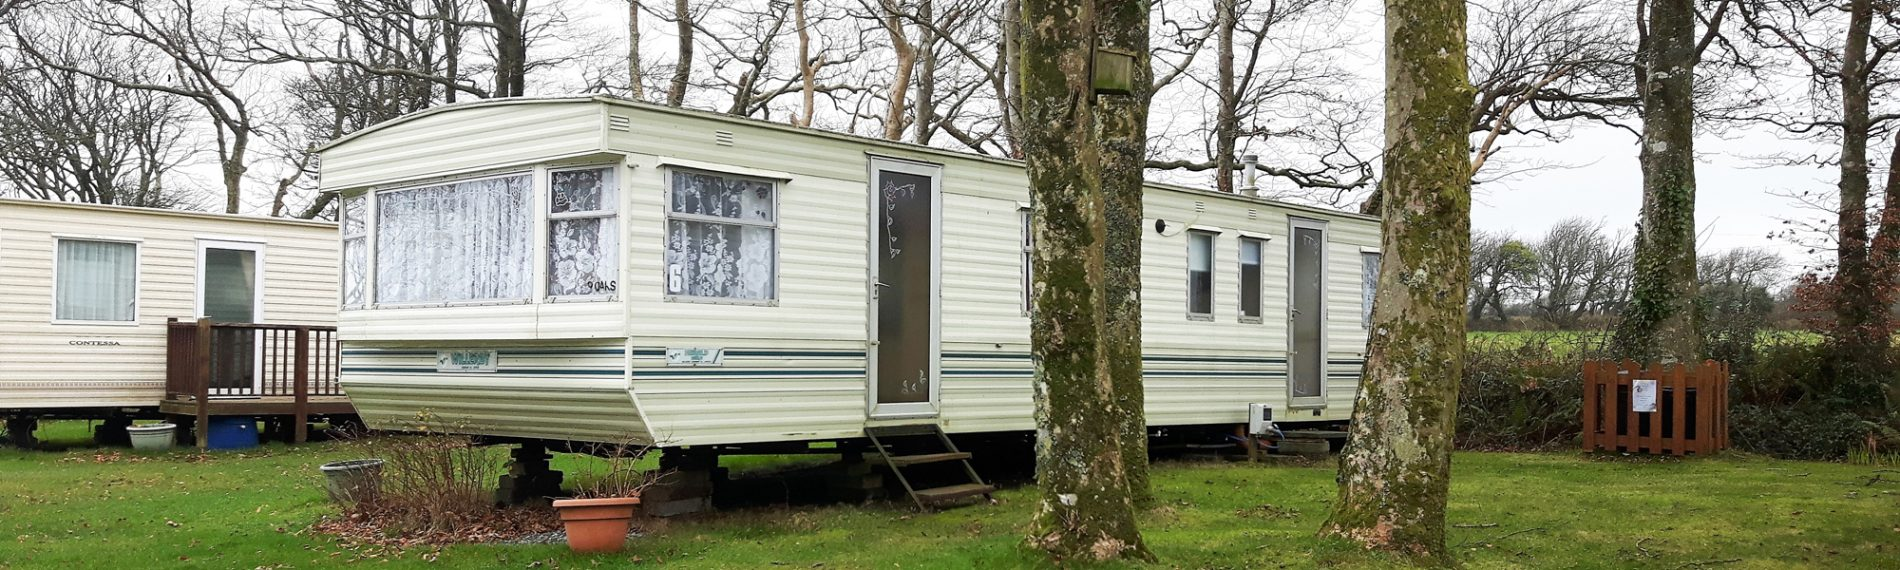 https://www.rosehillcaravanpark.co.uk/wp-content/uploads/2020/11/6-Wilerby-Herald-35x12-3-Bed-aspect-ratio-1900-570.jpg